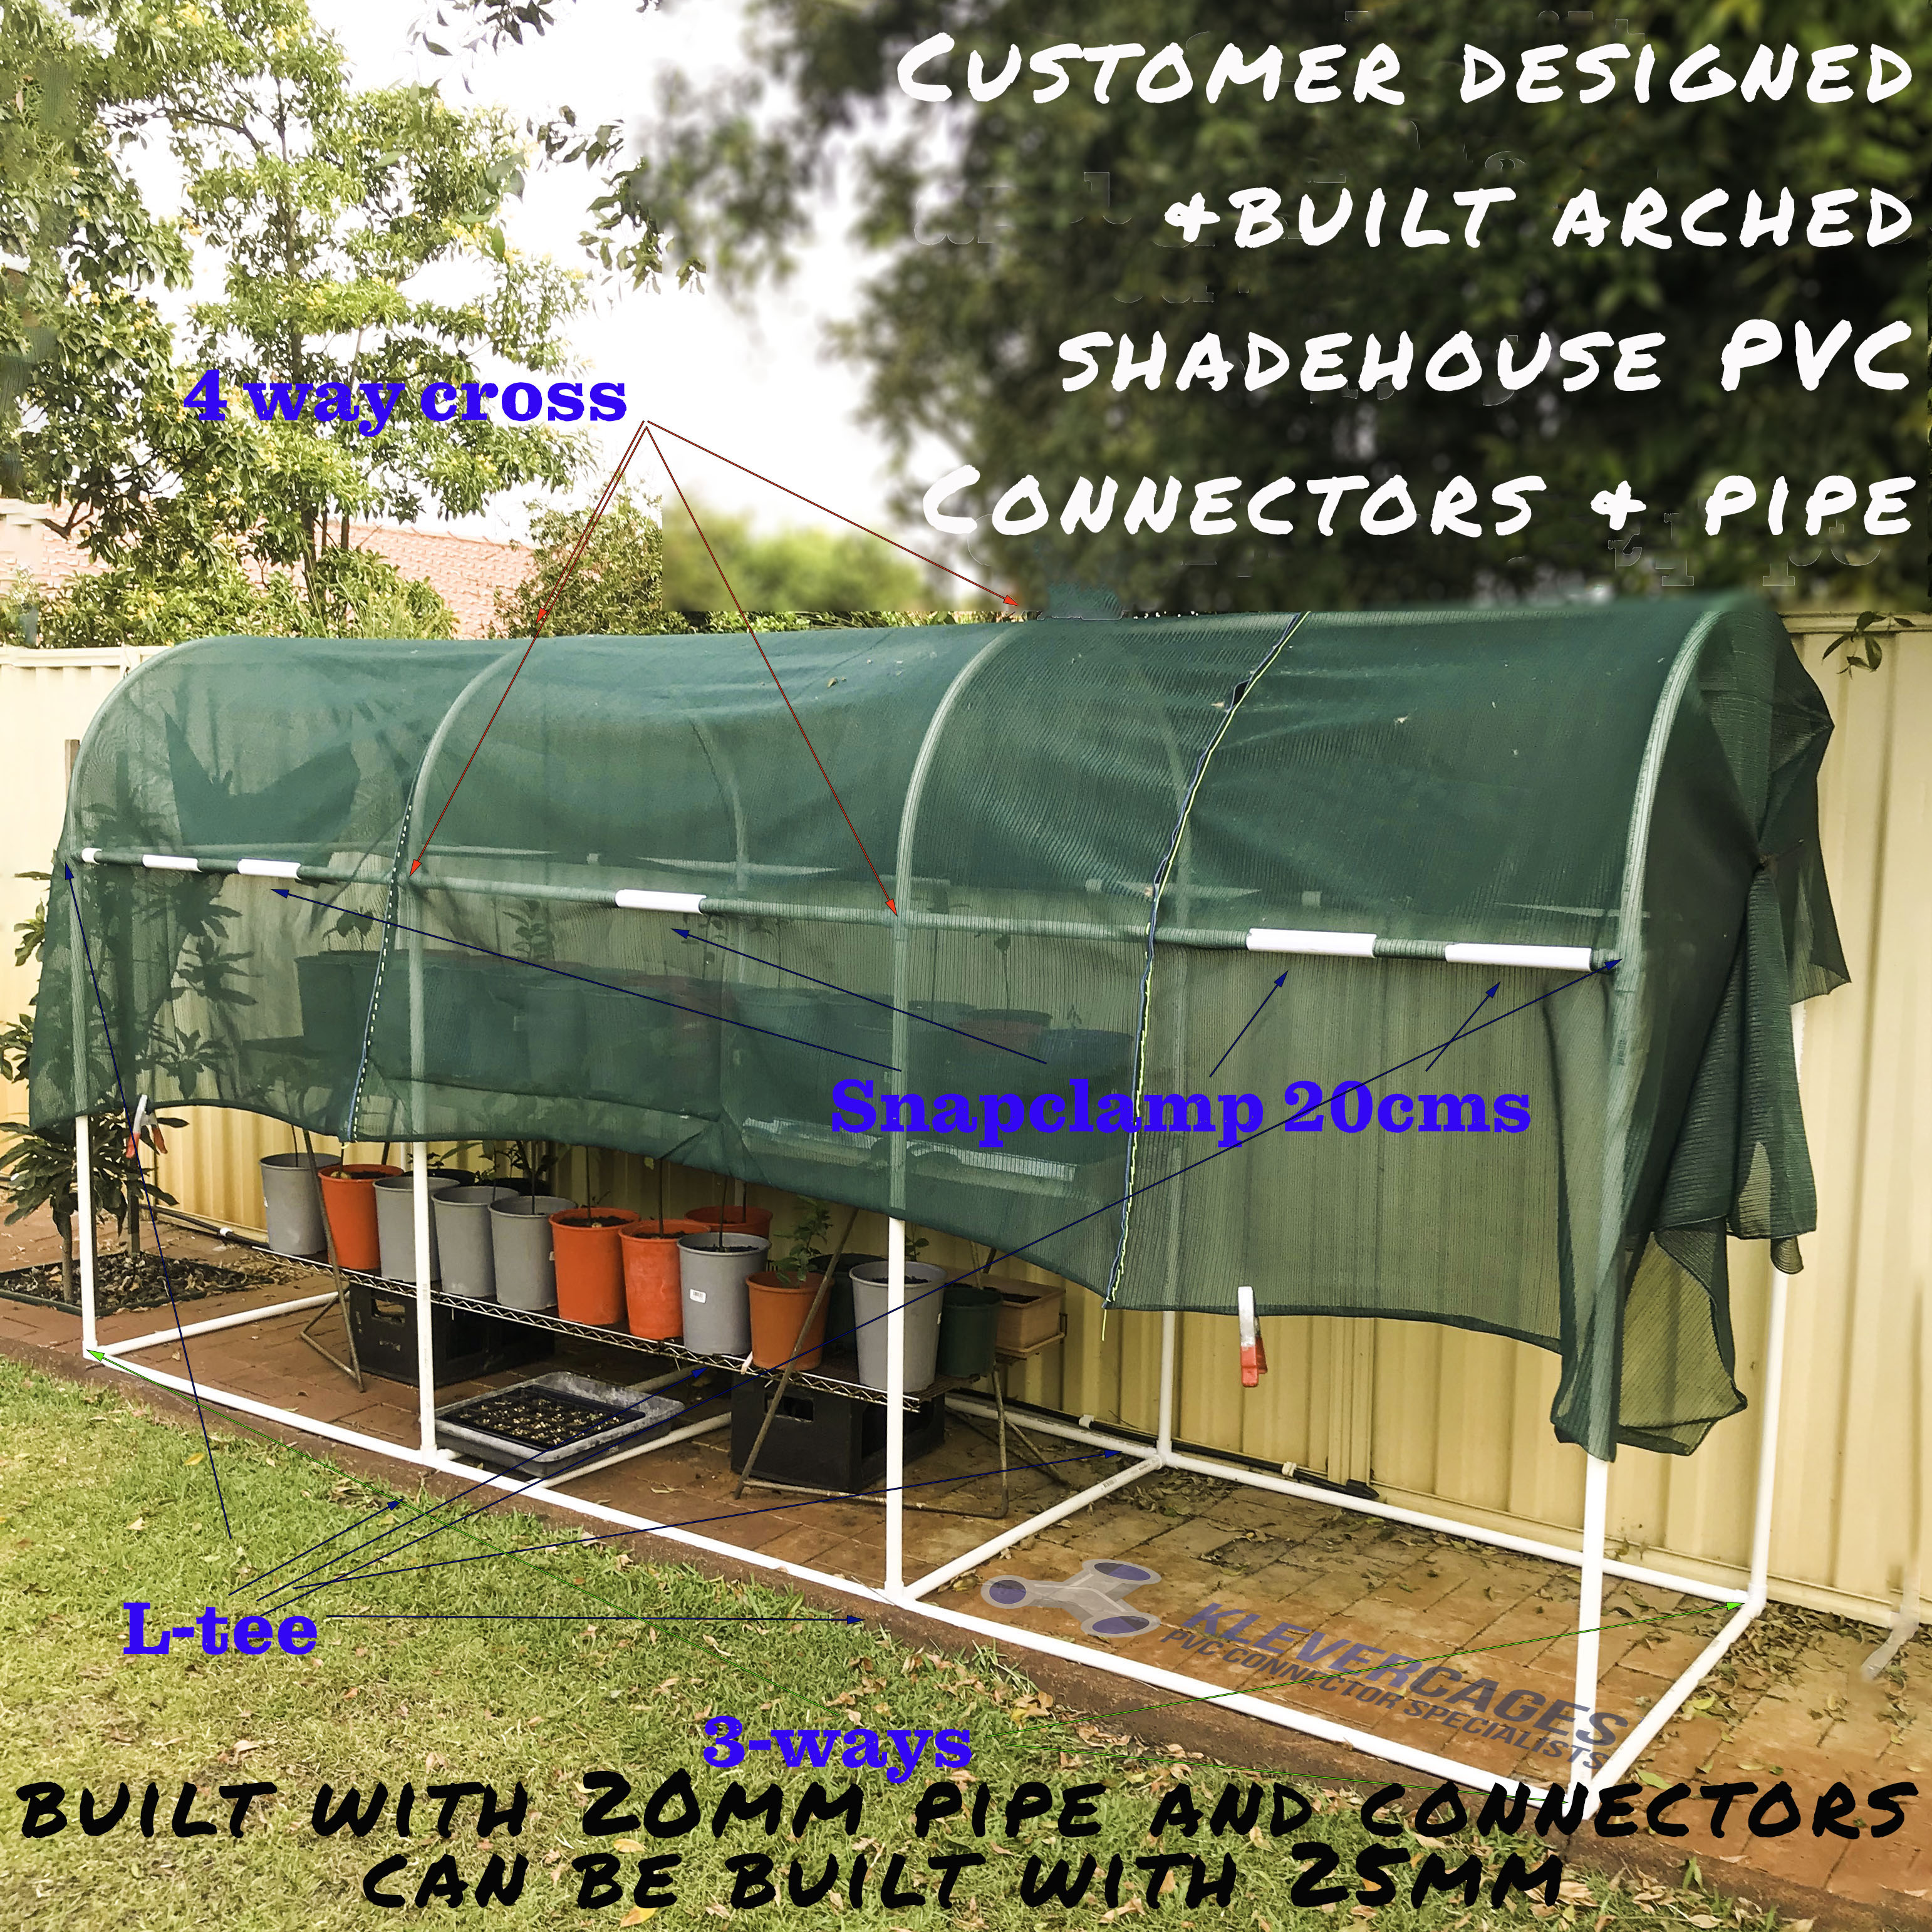 Diy arched greenhouse built with PVC connectors and pipe from Klever Cages. Protecting plants on a shelf from the harsh Australian sun.